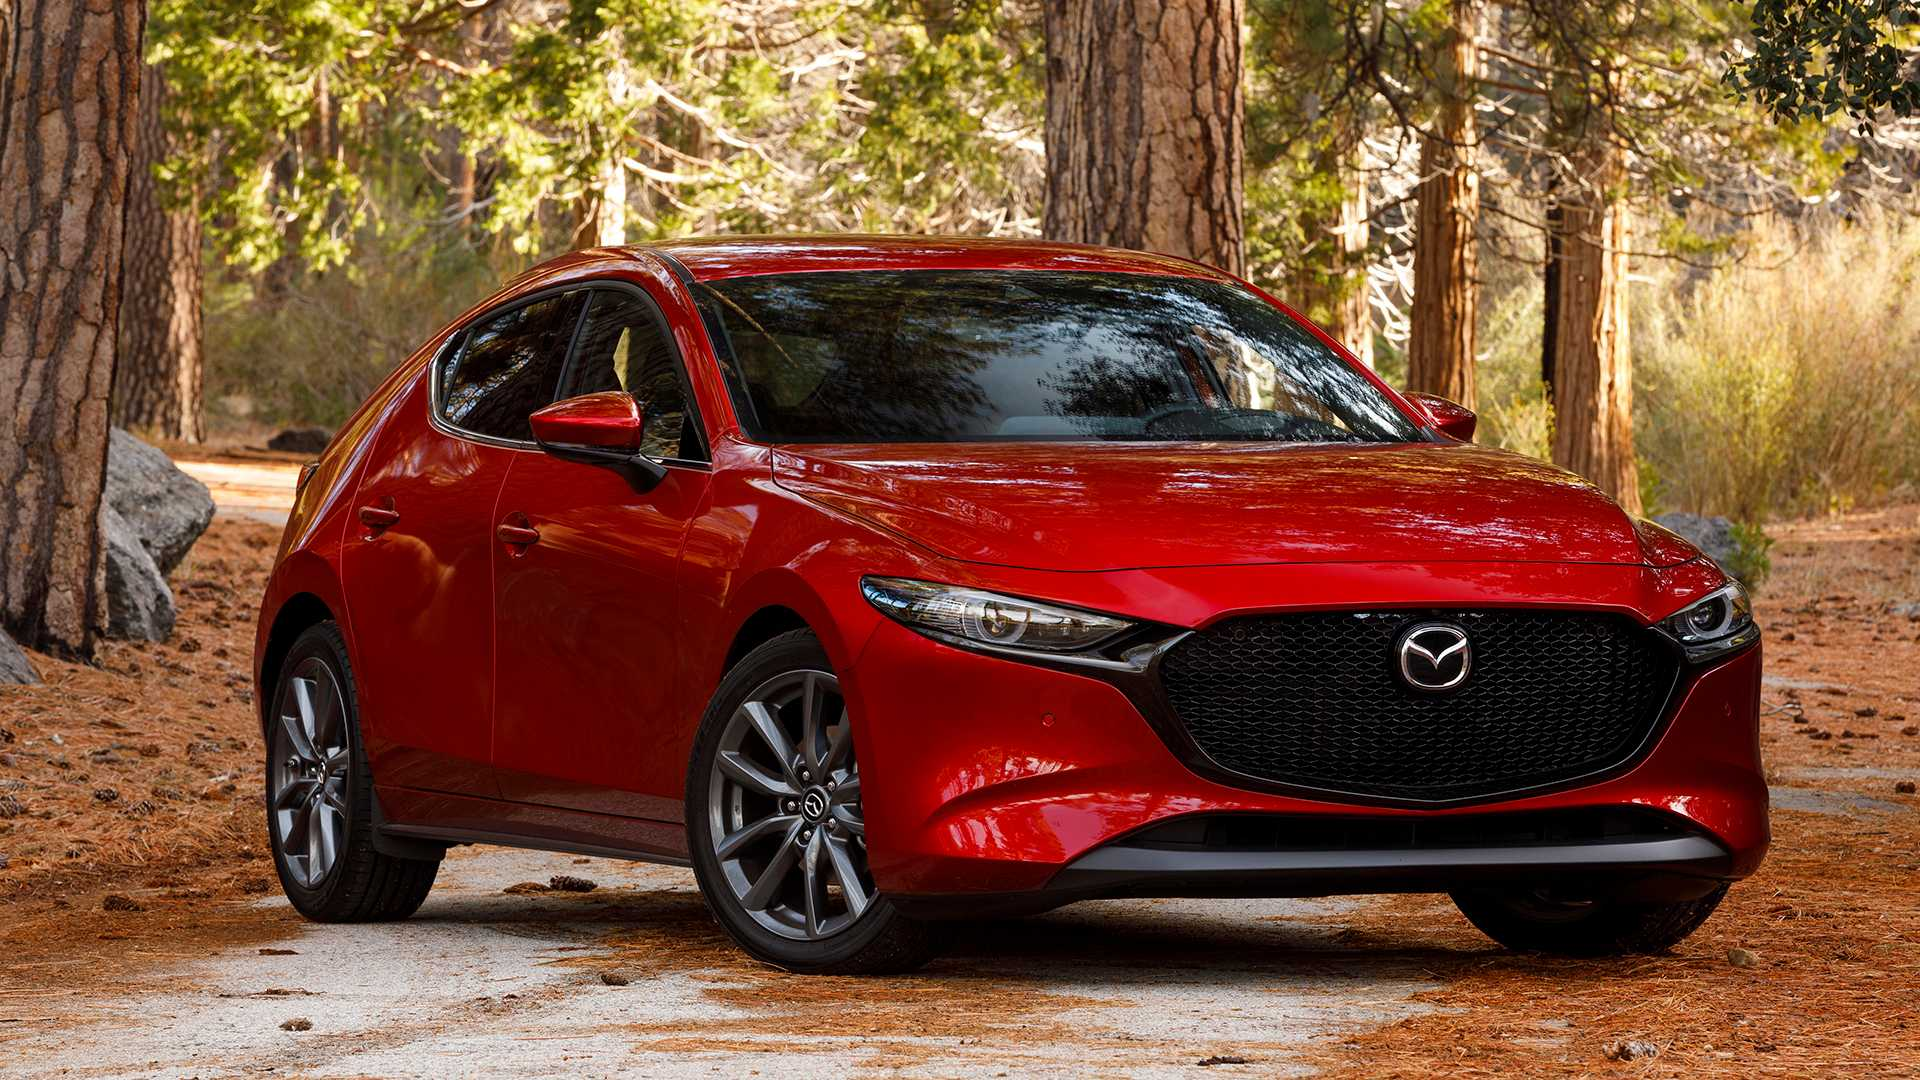 63 The Best 2019 Mazdaspeed 3 Price Design And Review